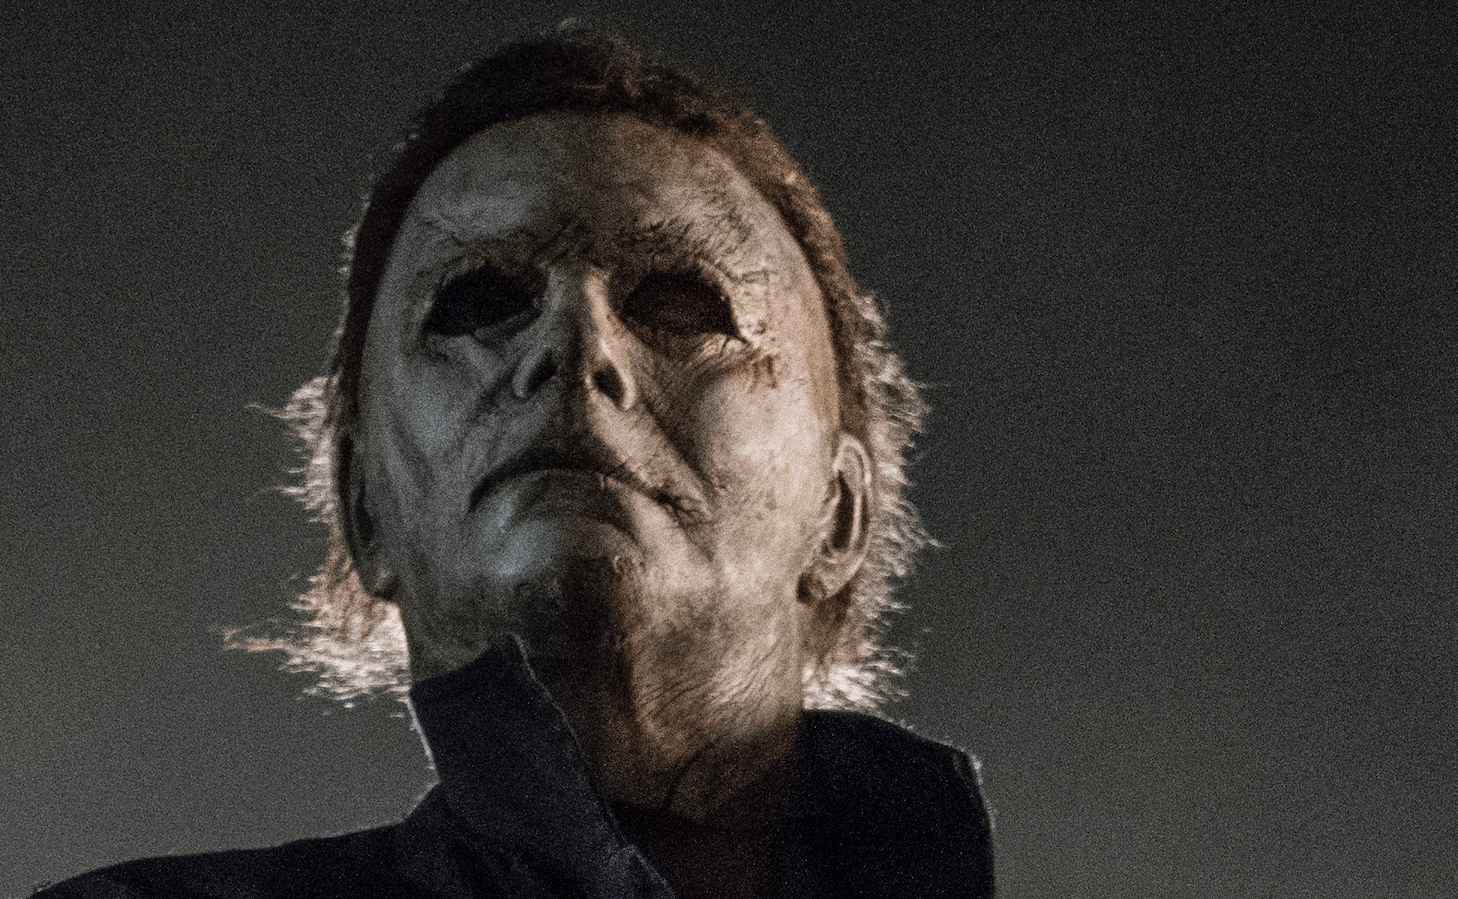 Gallery These Mega Sized Hd Images Of Michael Myers From